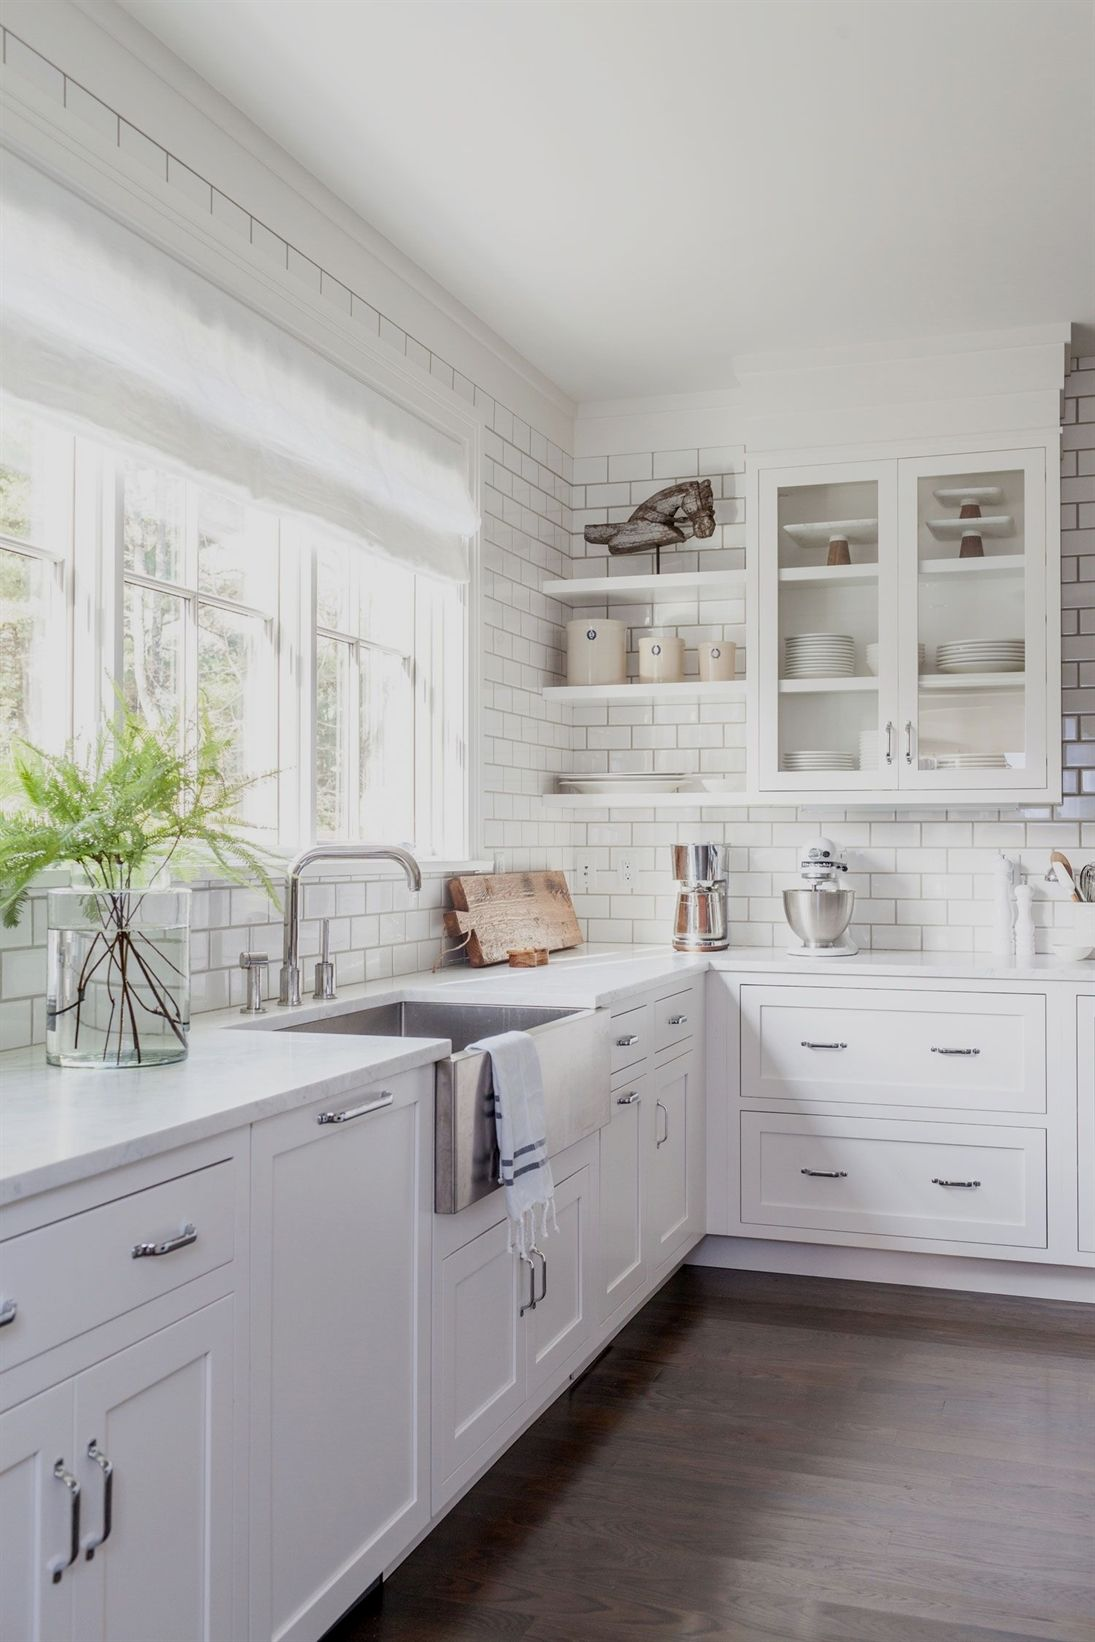 Large window kitchen designs  amazing kitchen design idea with white tile white cabinets large